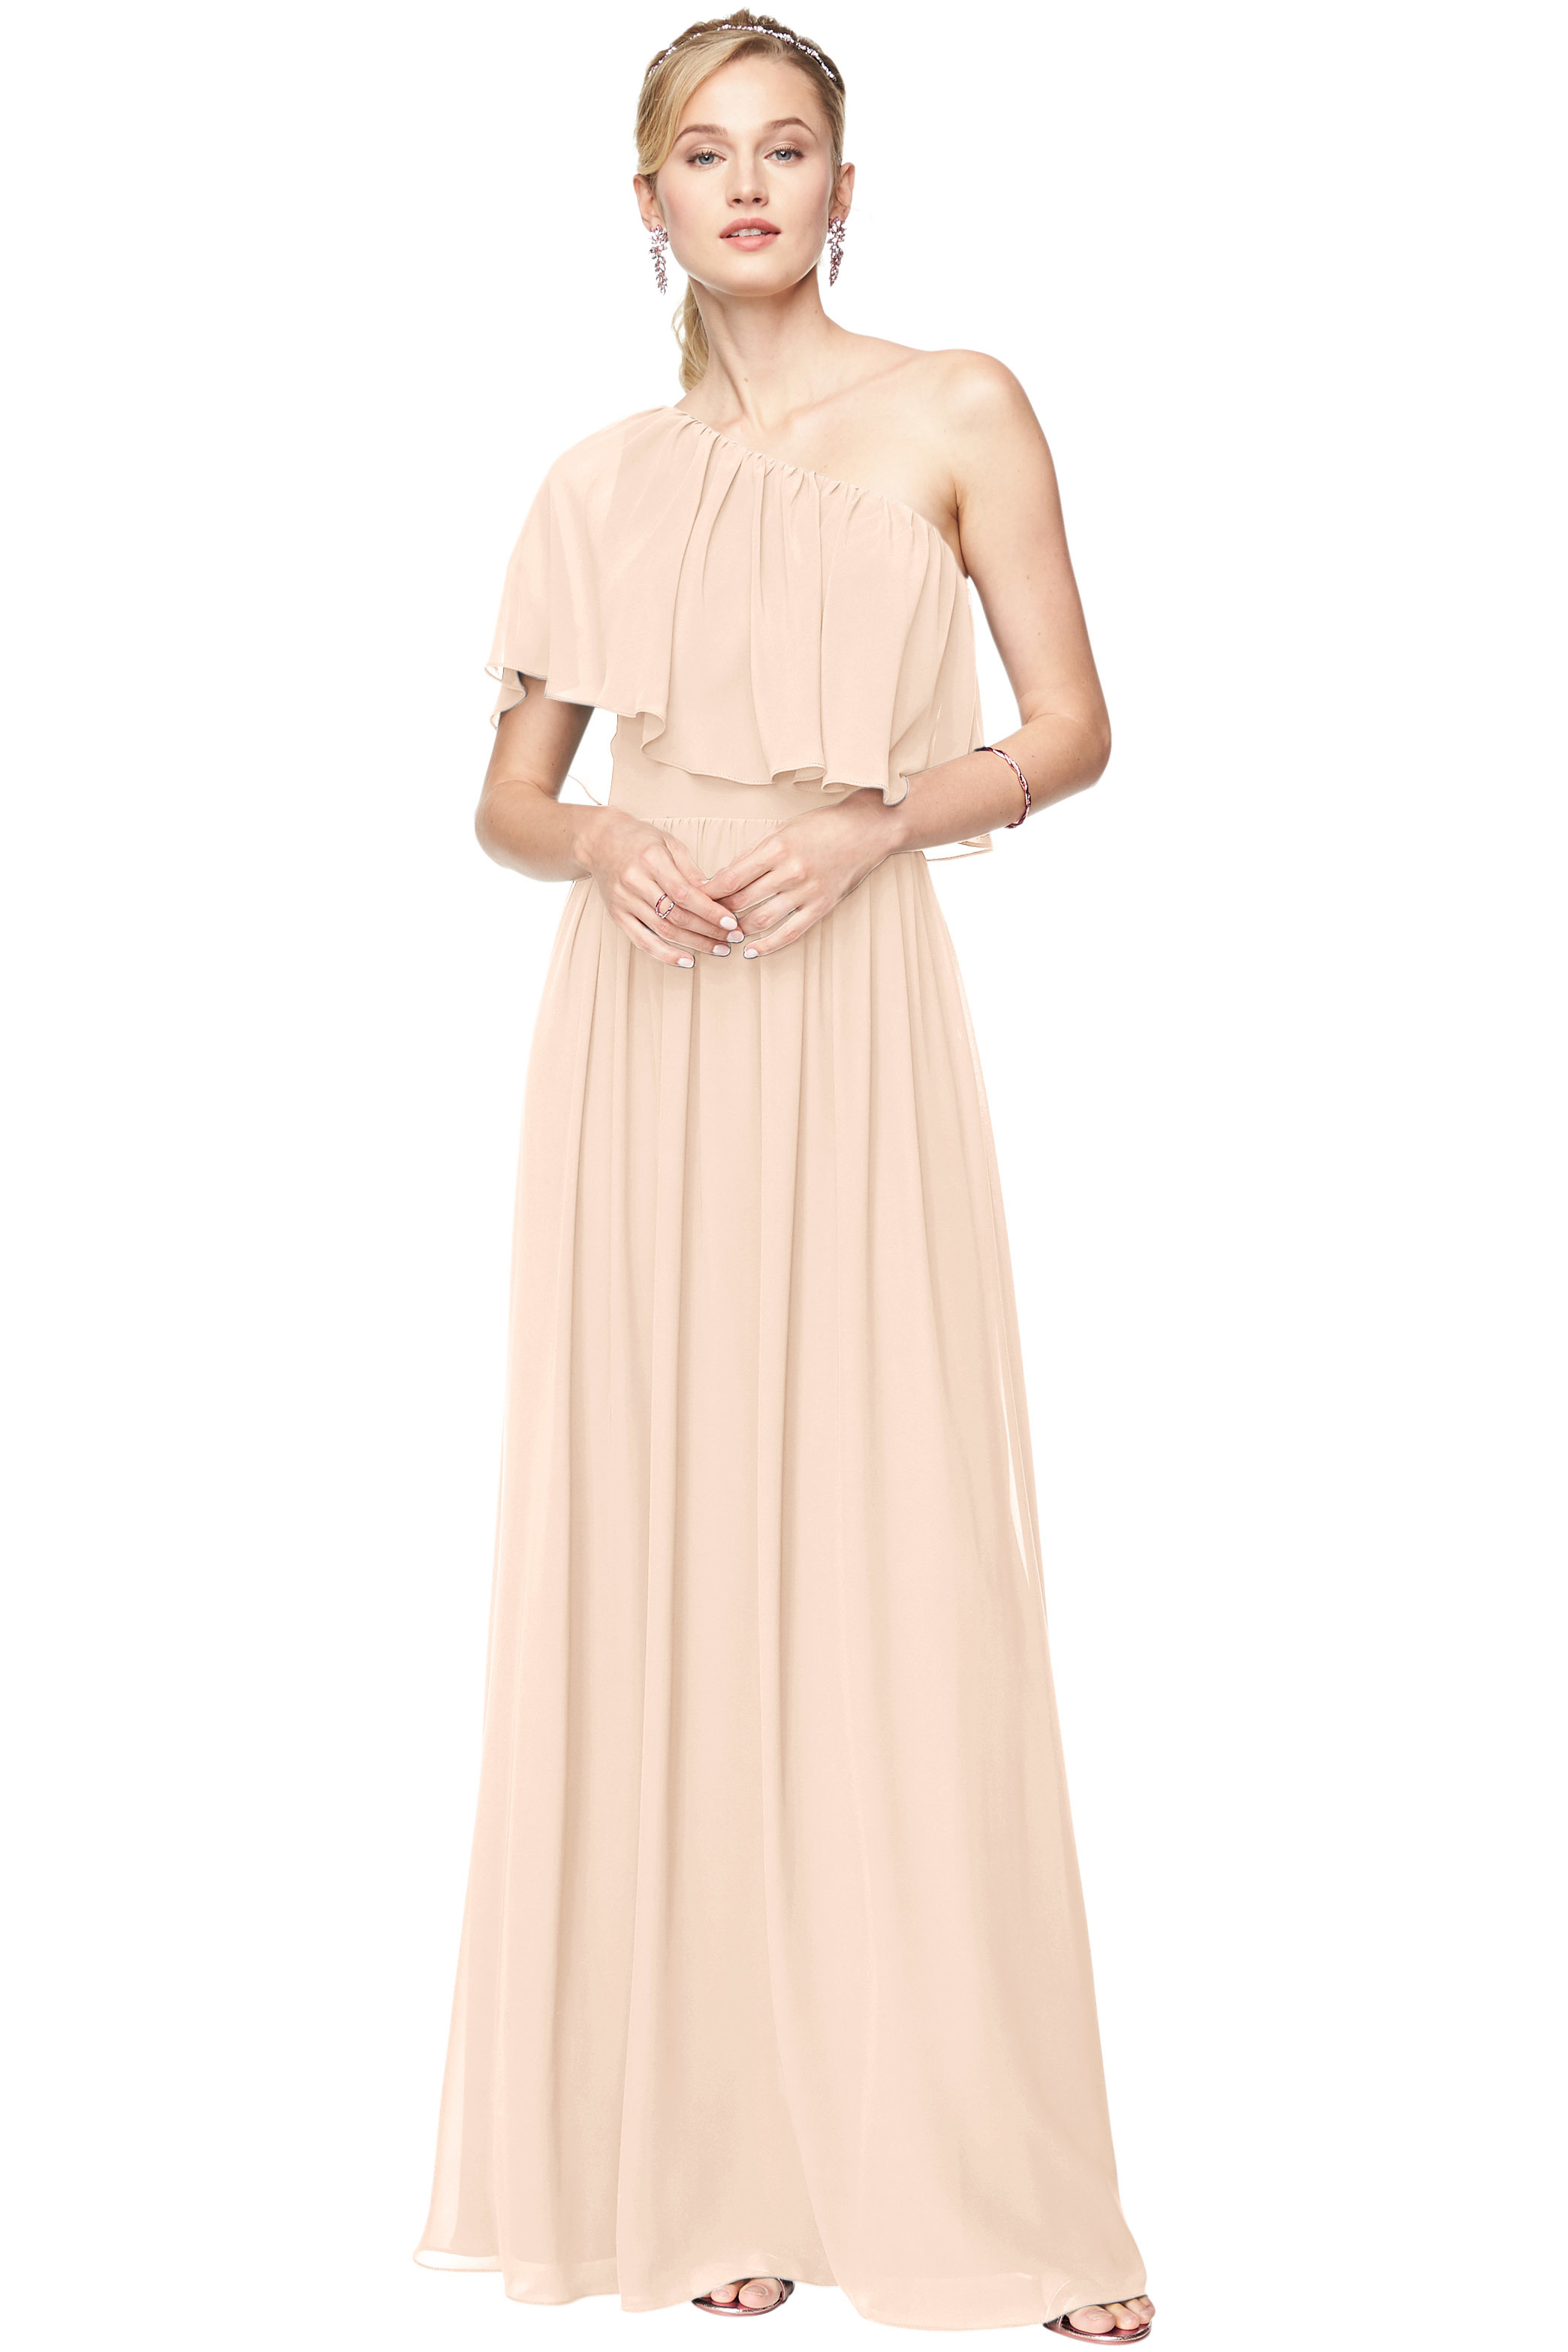 Bill Levkoff CHAMPAGNE Chiffon One-Shoulder A-Line gown, $184.00 Front